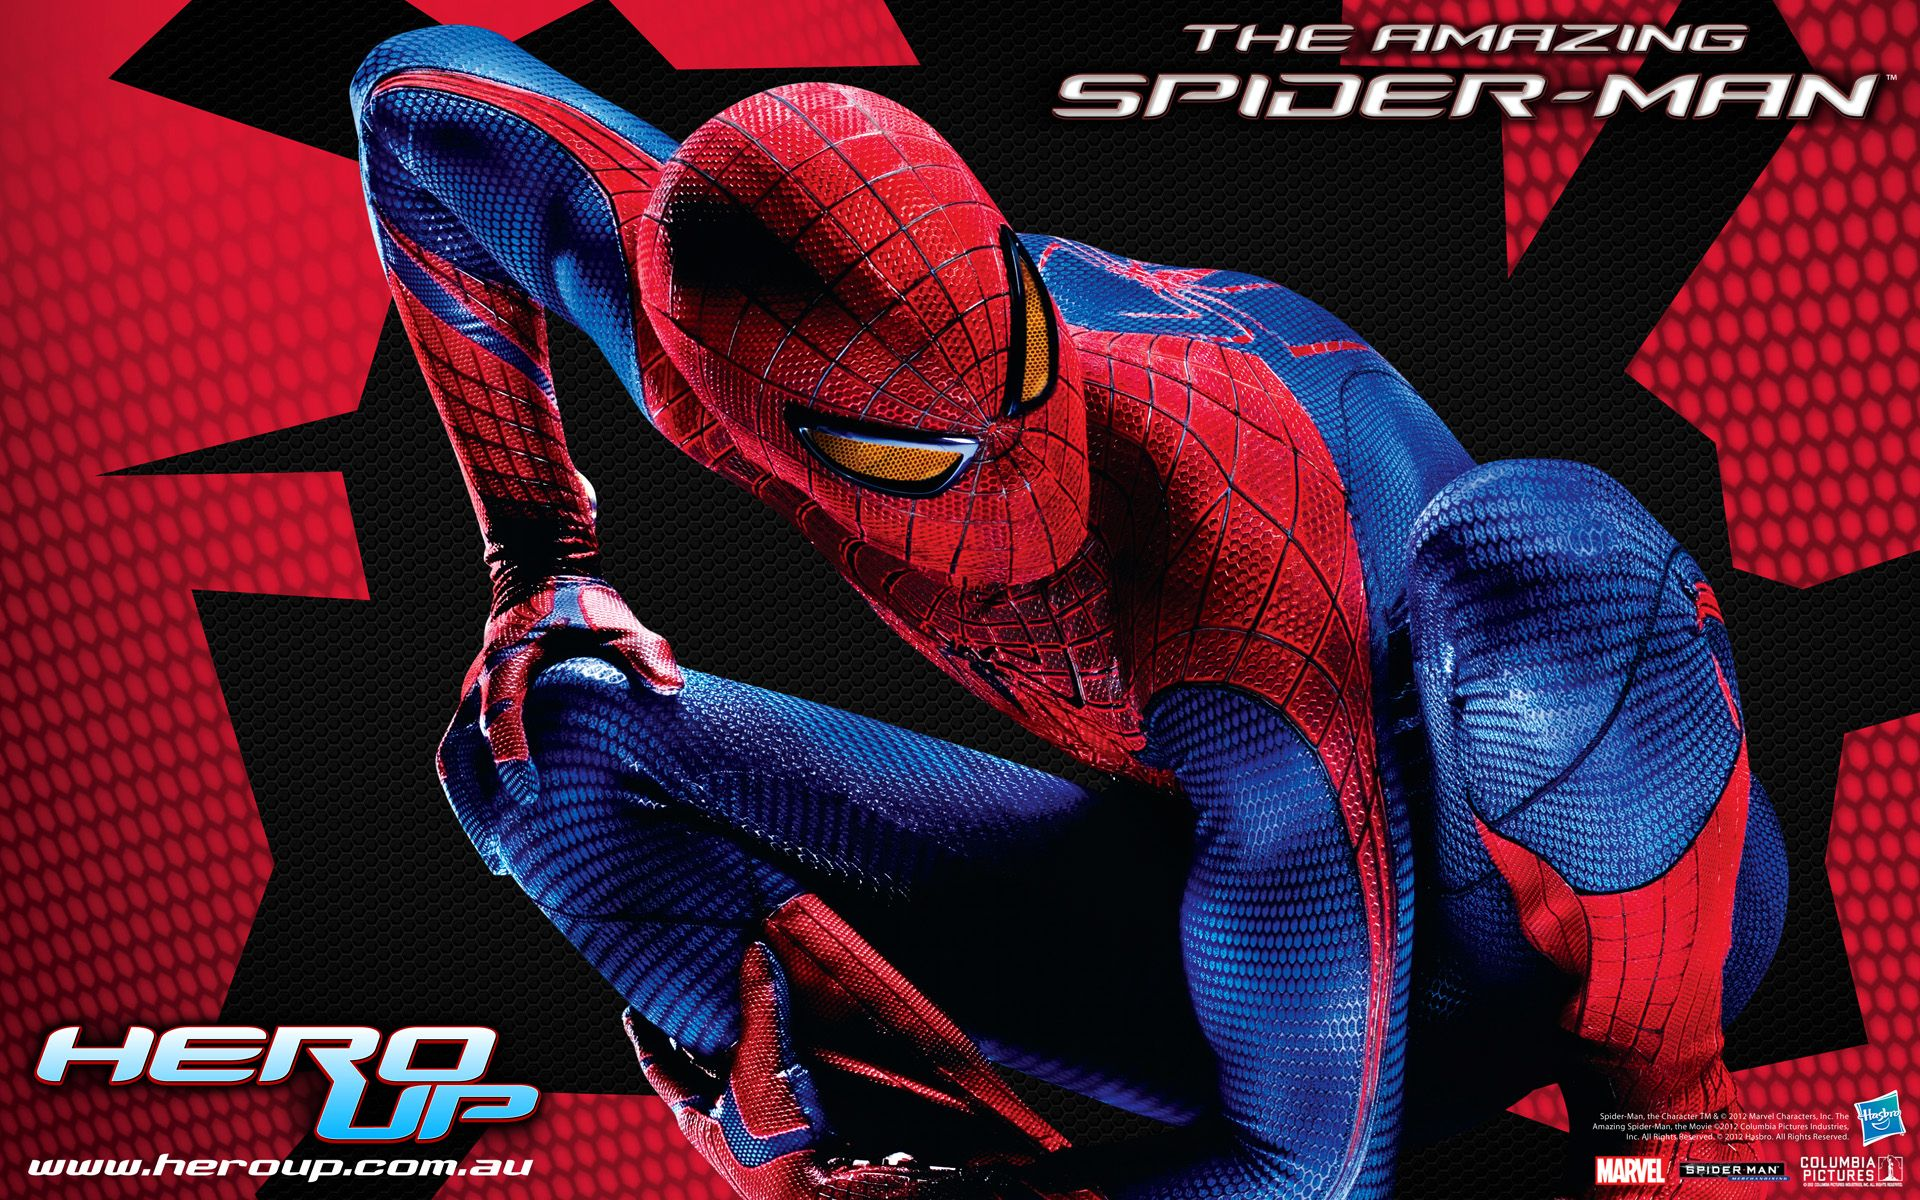 Free Spider Man 3 Hd Download Download Free High Resolution Hd Widescreen Spider Man 3 Hd Wallpapers And Black Spiderman Spiderman Pictures Marvel Wallpaper